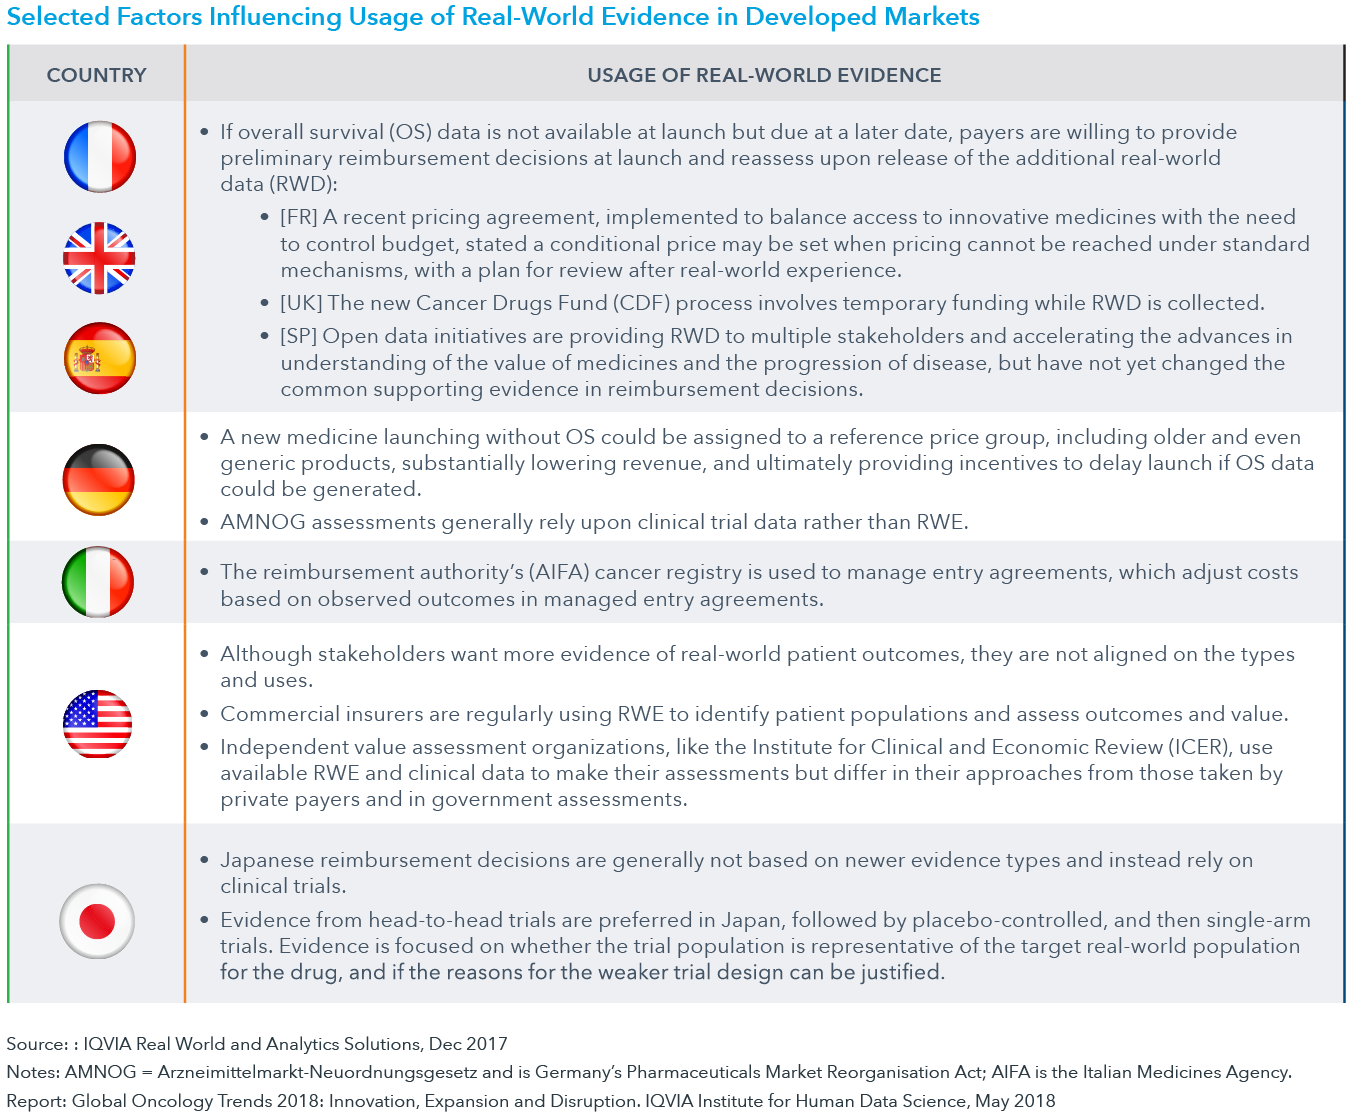 Chart 46: Selected Factors Influencing Usage of Real-World Evidence in Developed Markets